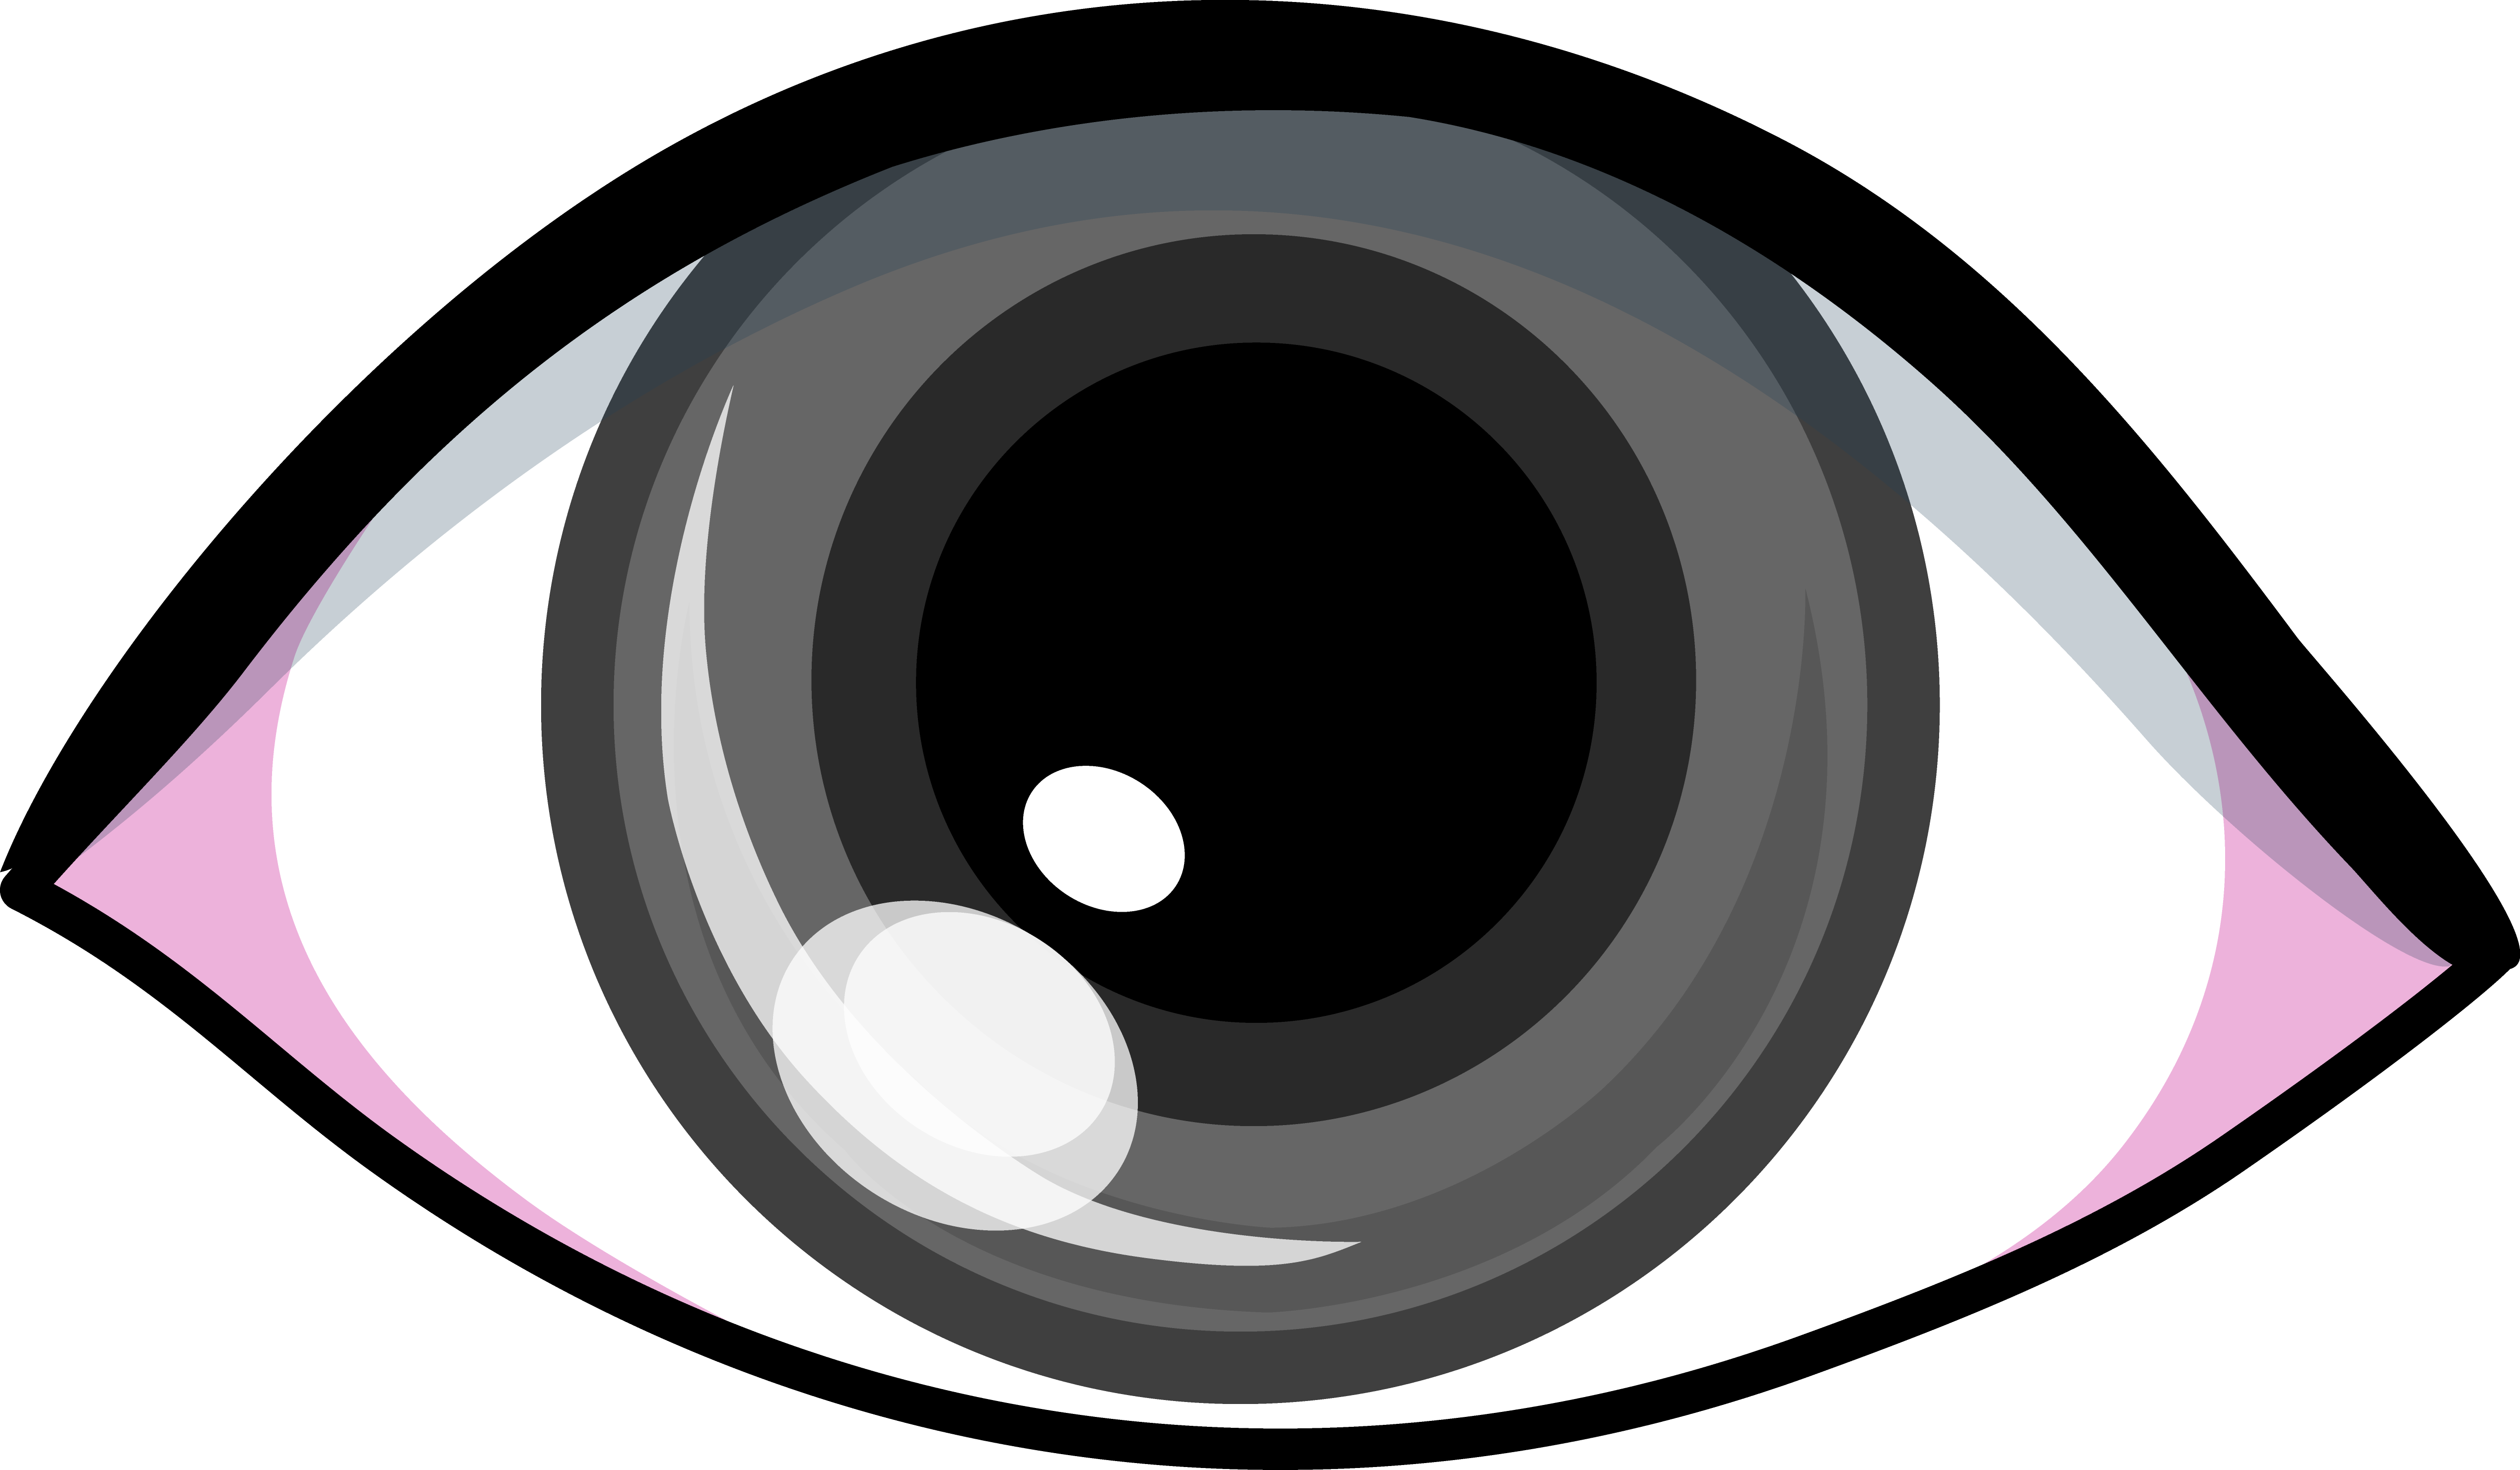 5076x2962 Eye Clipart Graphic